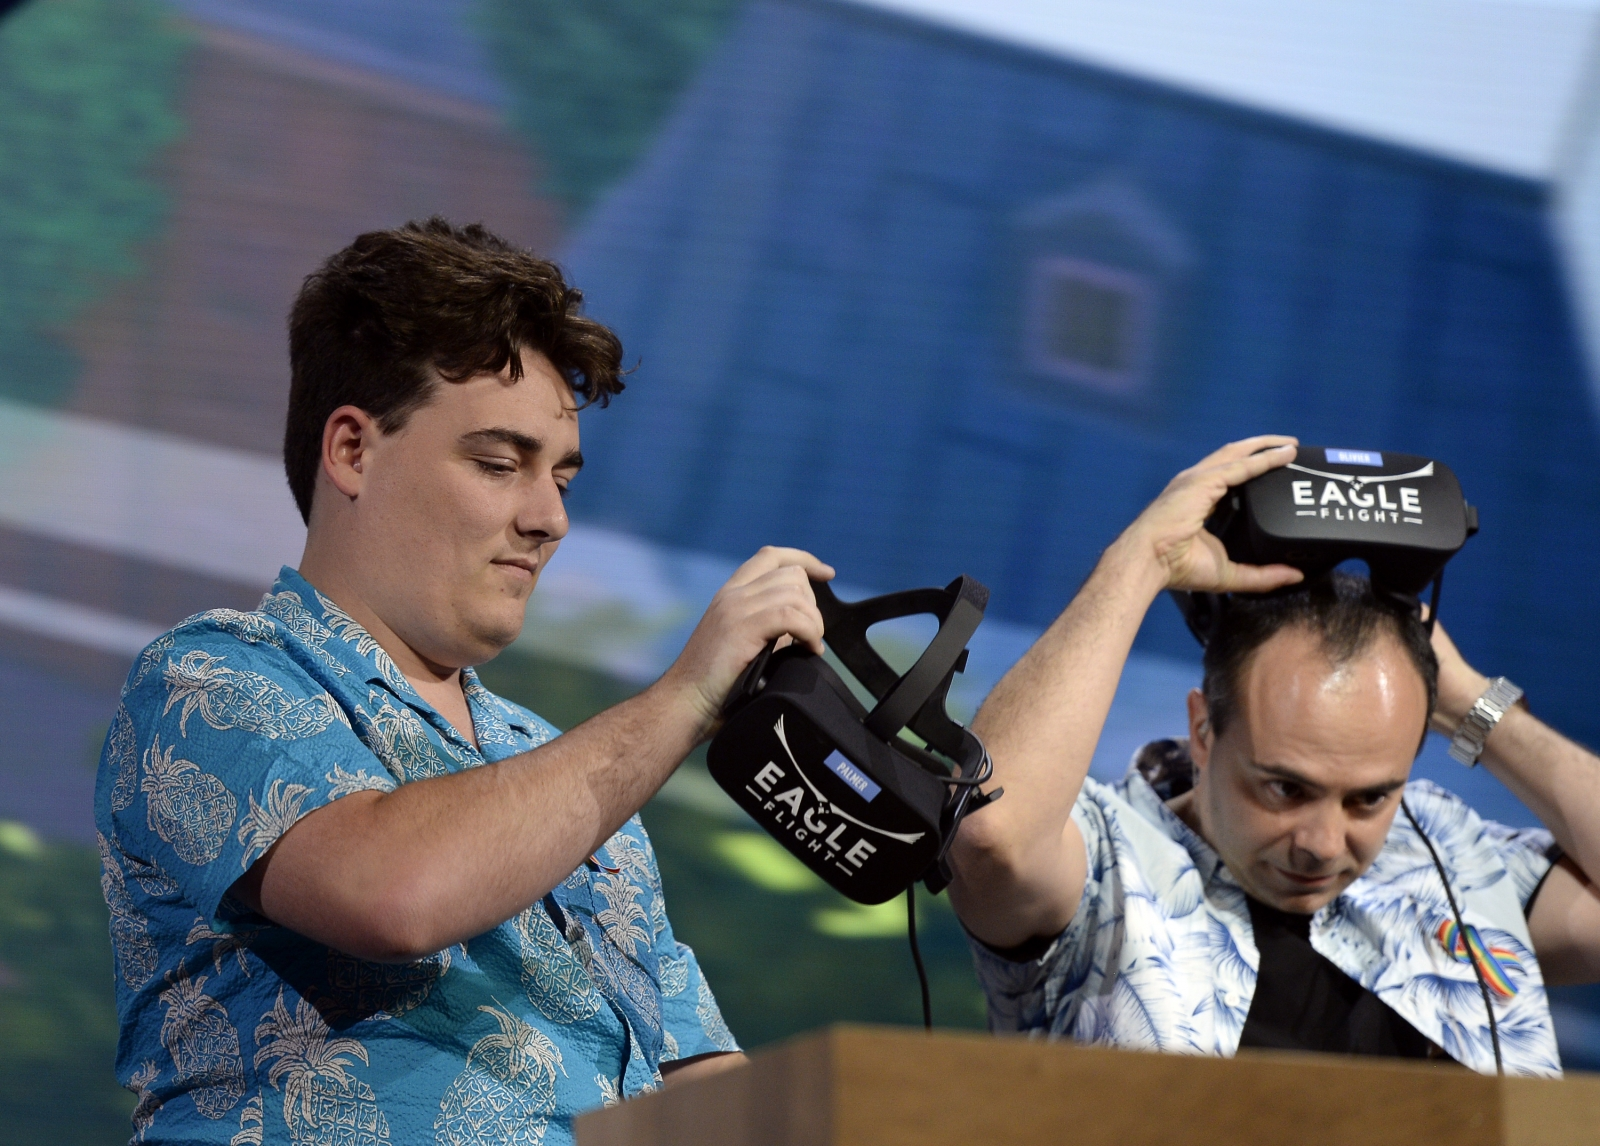 Oculus' Palmer Luckey wants to help build Trump's border wall